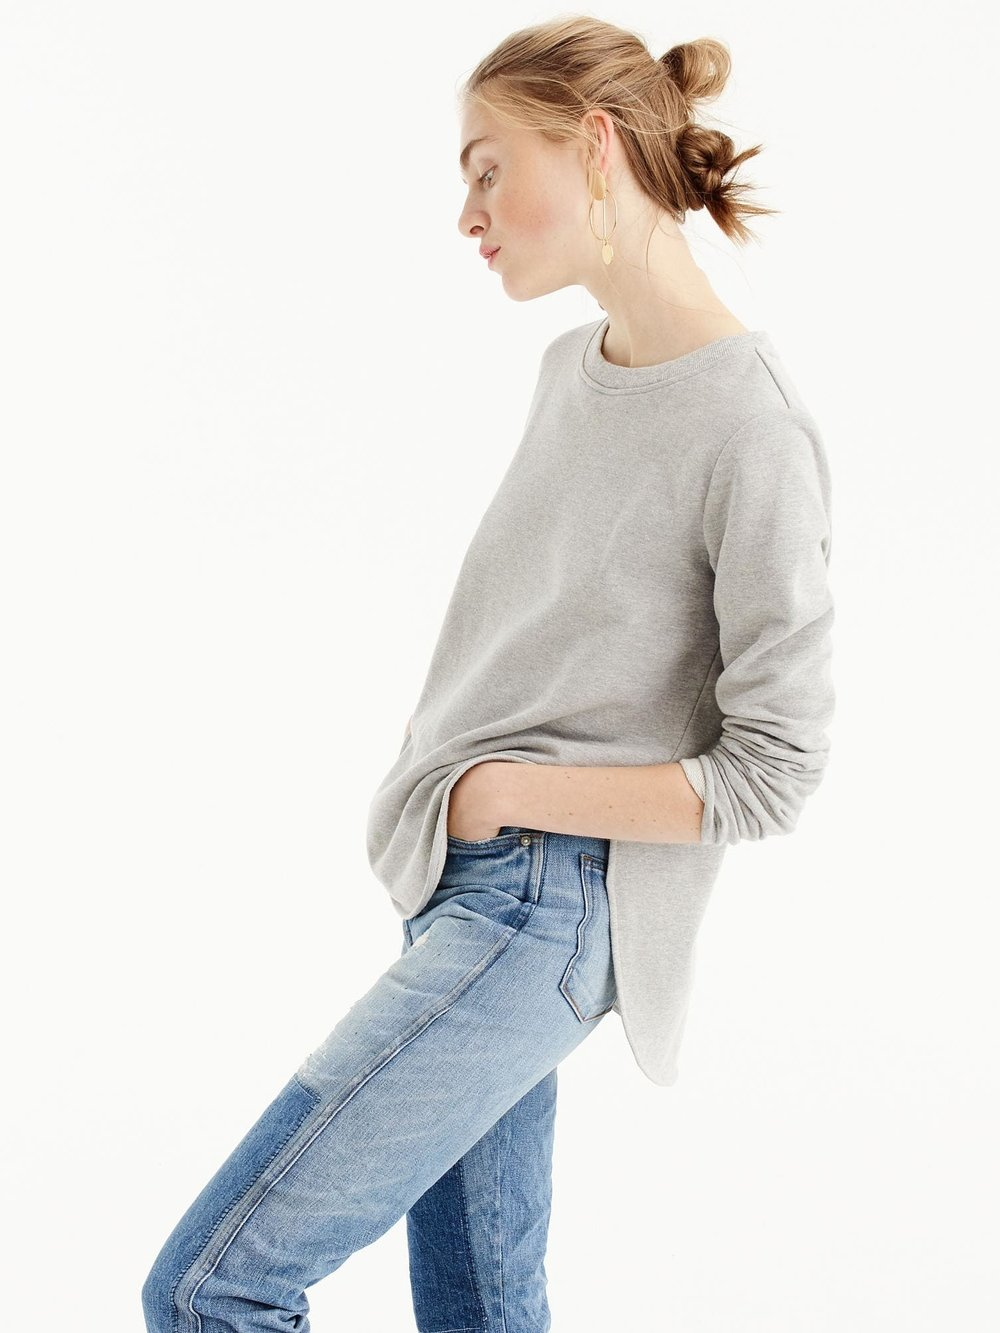 J.CREW Round Hem sweatshirt Tunic  This easy sweatshirt tunic has a rounded hem that's just the right (bum-covering) length.